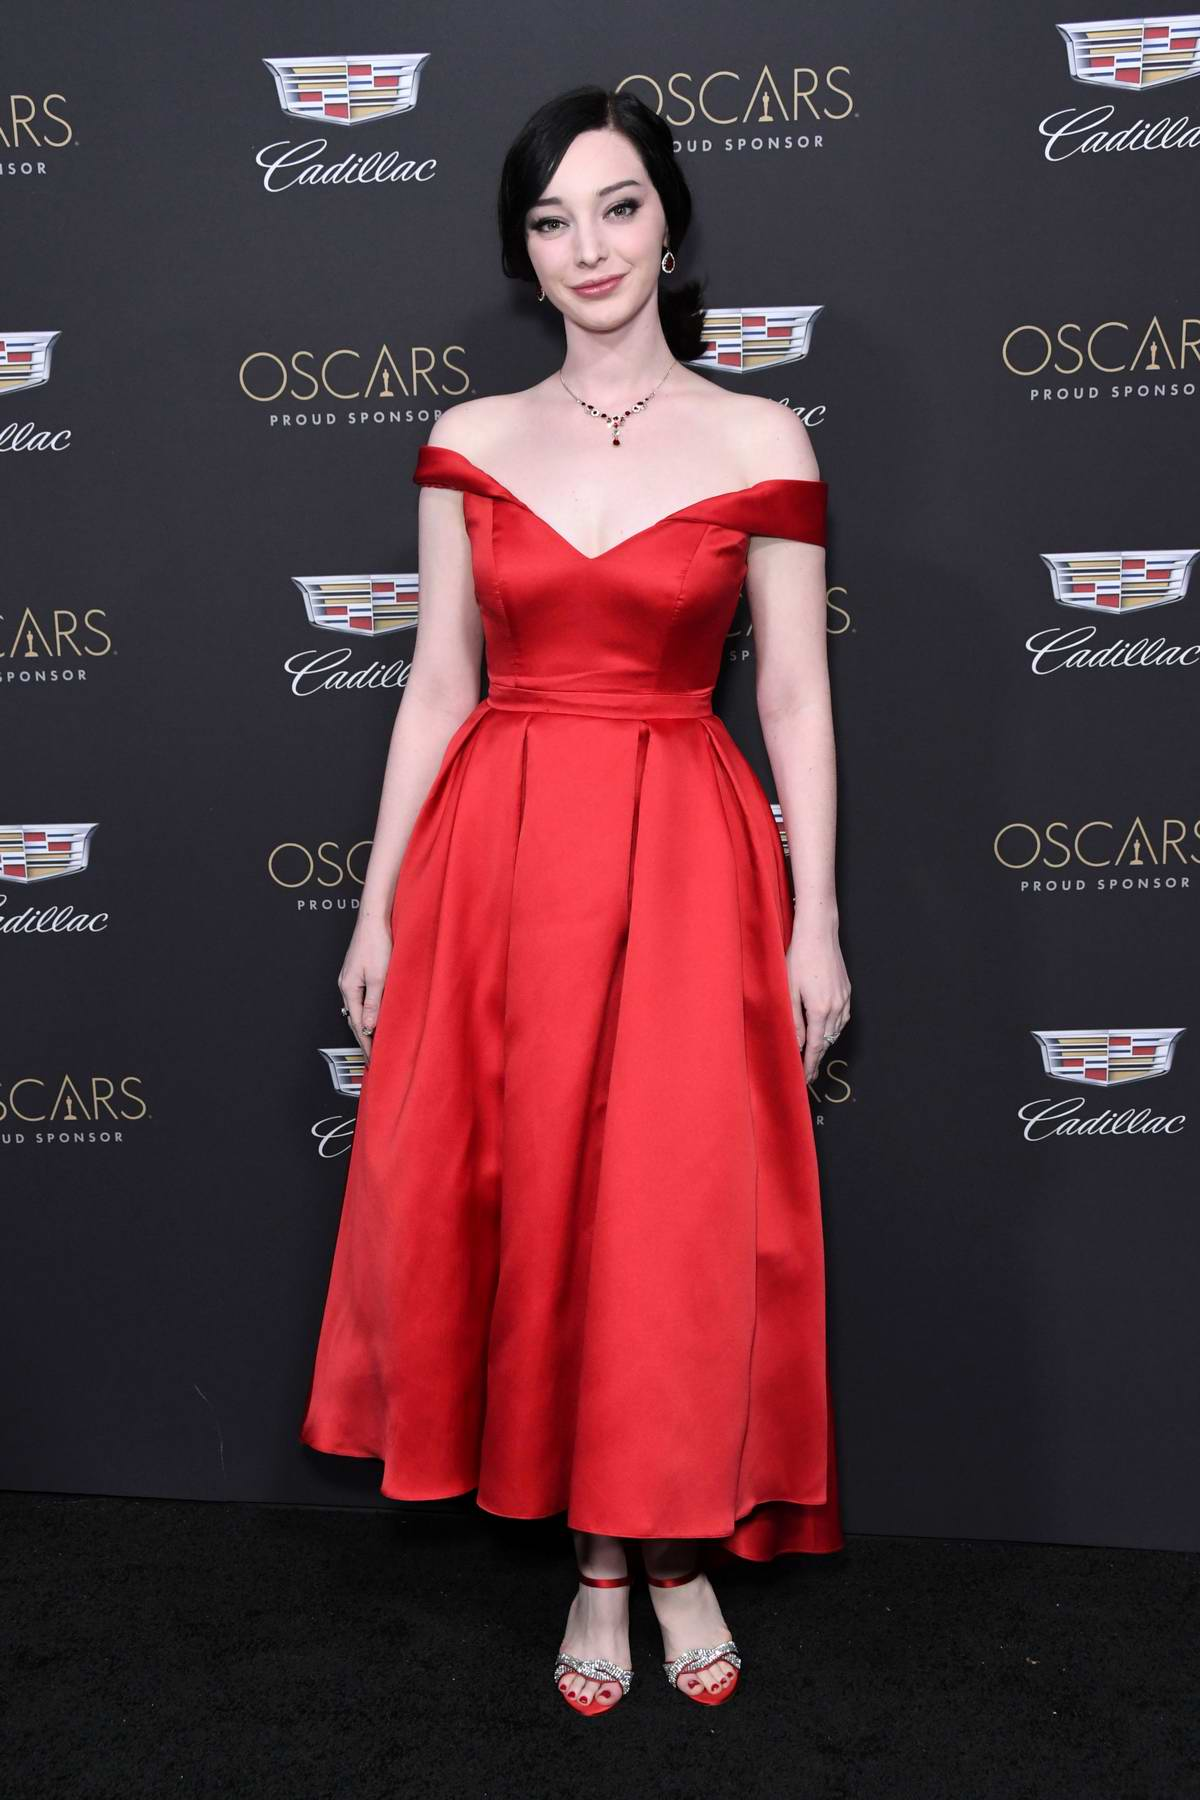 Emma Dumont attends Cadillac Celebrates The 91st Annual Academy Awards held at the Chateau Marmont in West Hollywood, Los Angeles